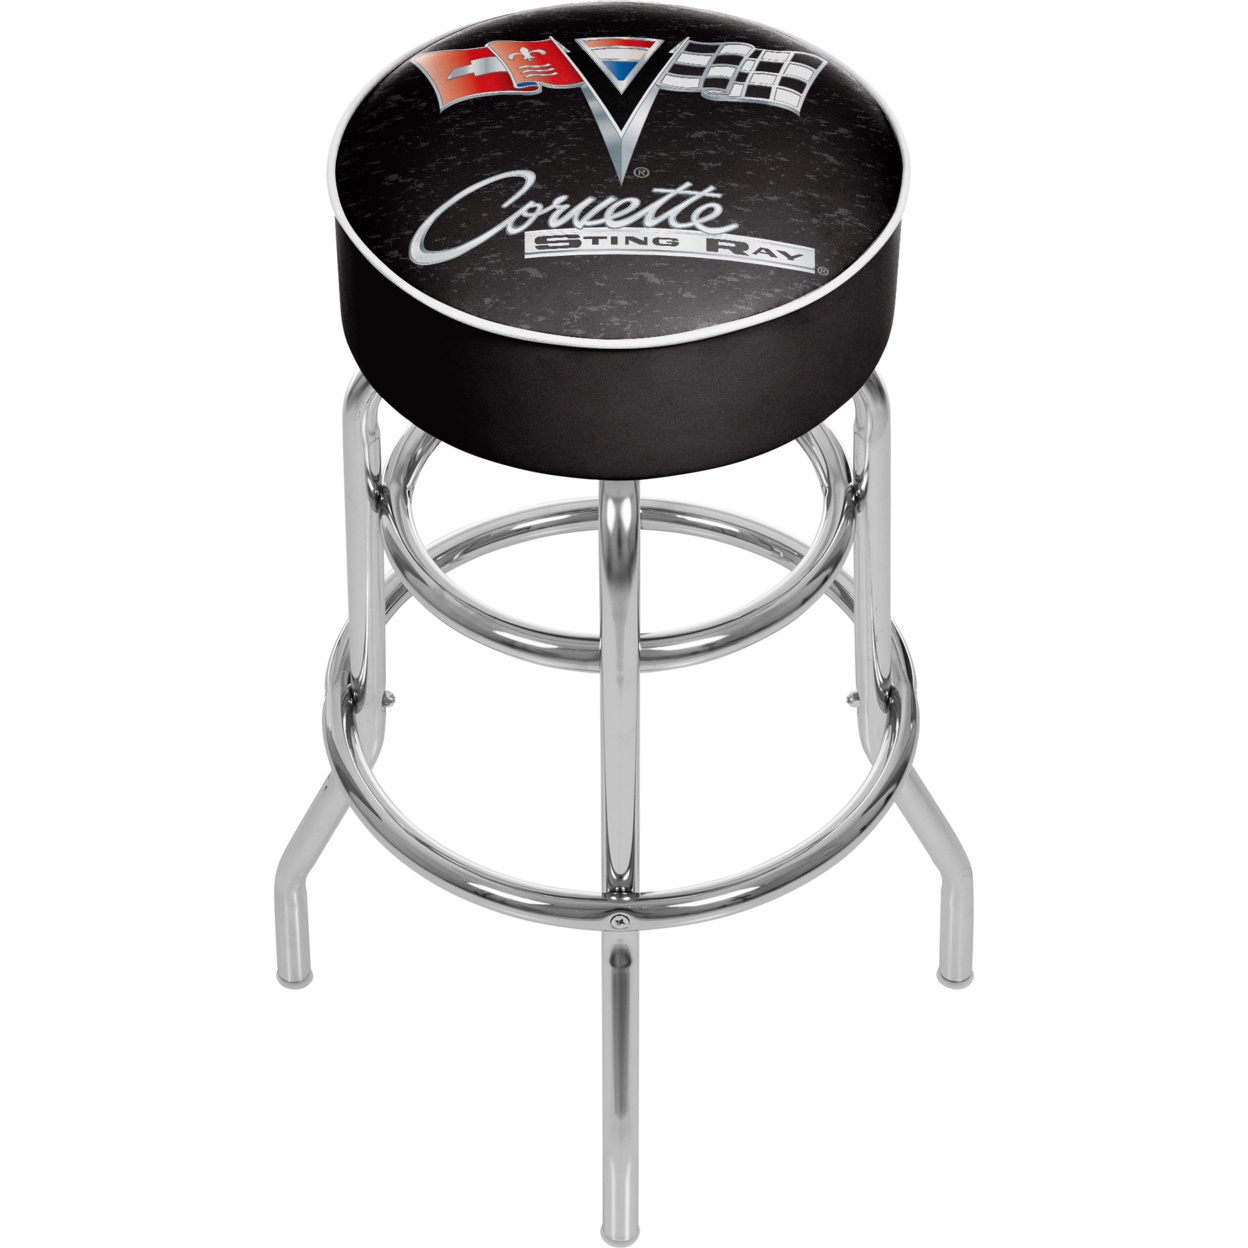 Hot Sale Corvette C2 Black Padded Swivel Bar Stool 30 Inches High